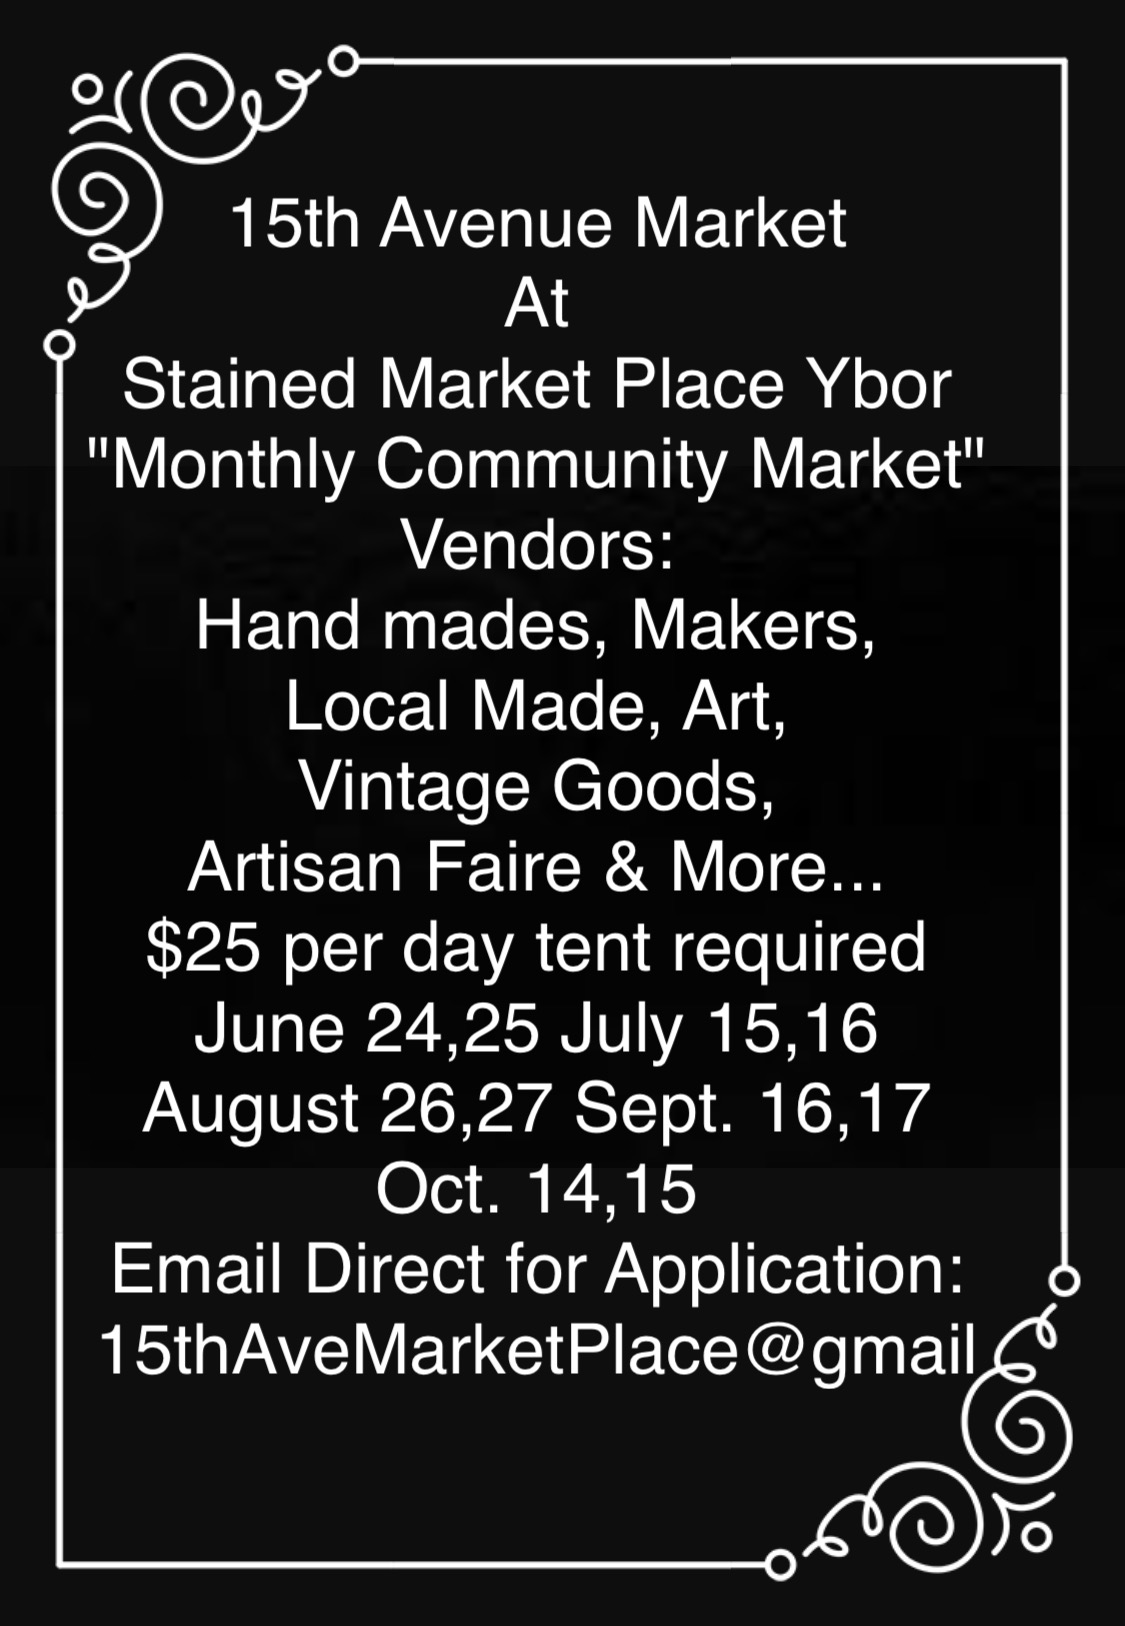 15th Avenue Market: Pop Up Monthly Market Ybor